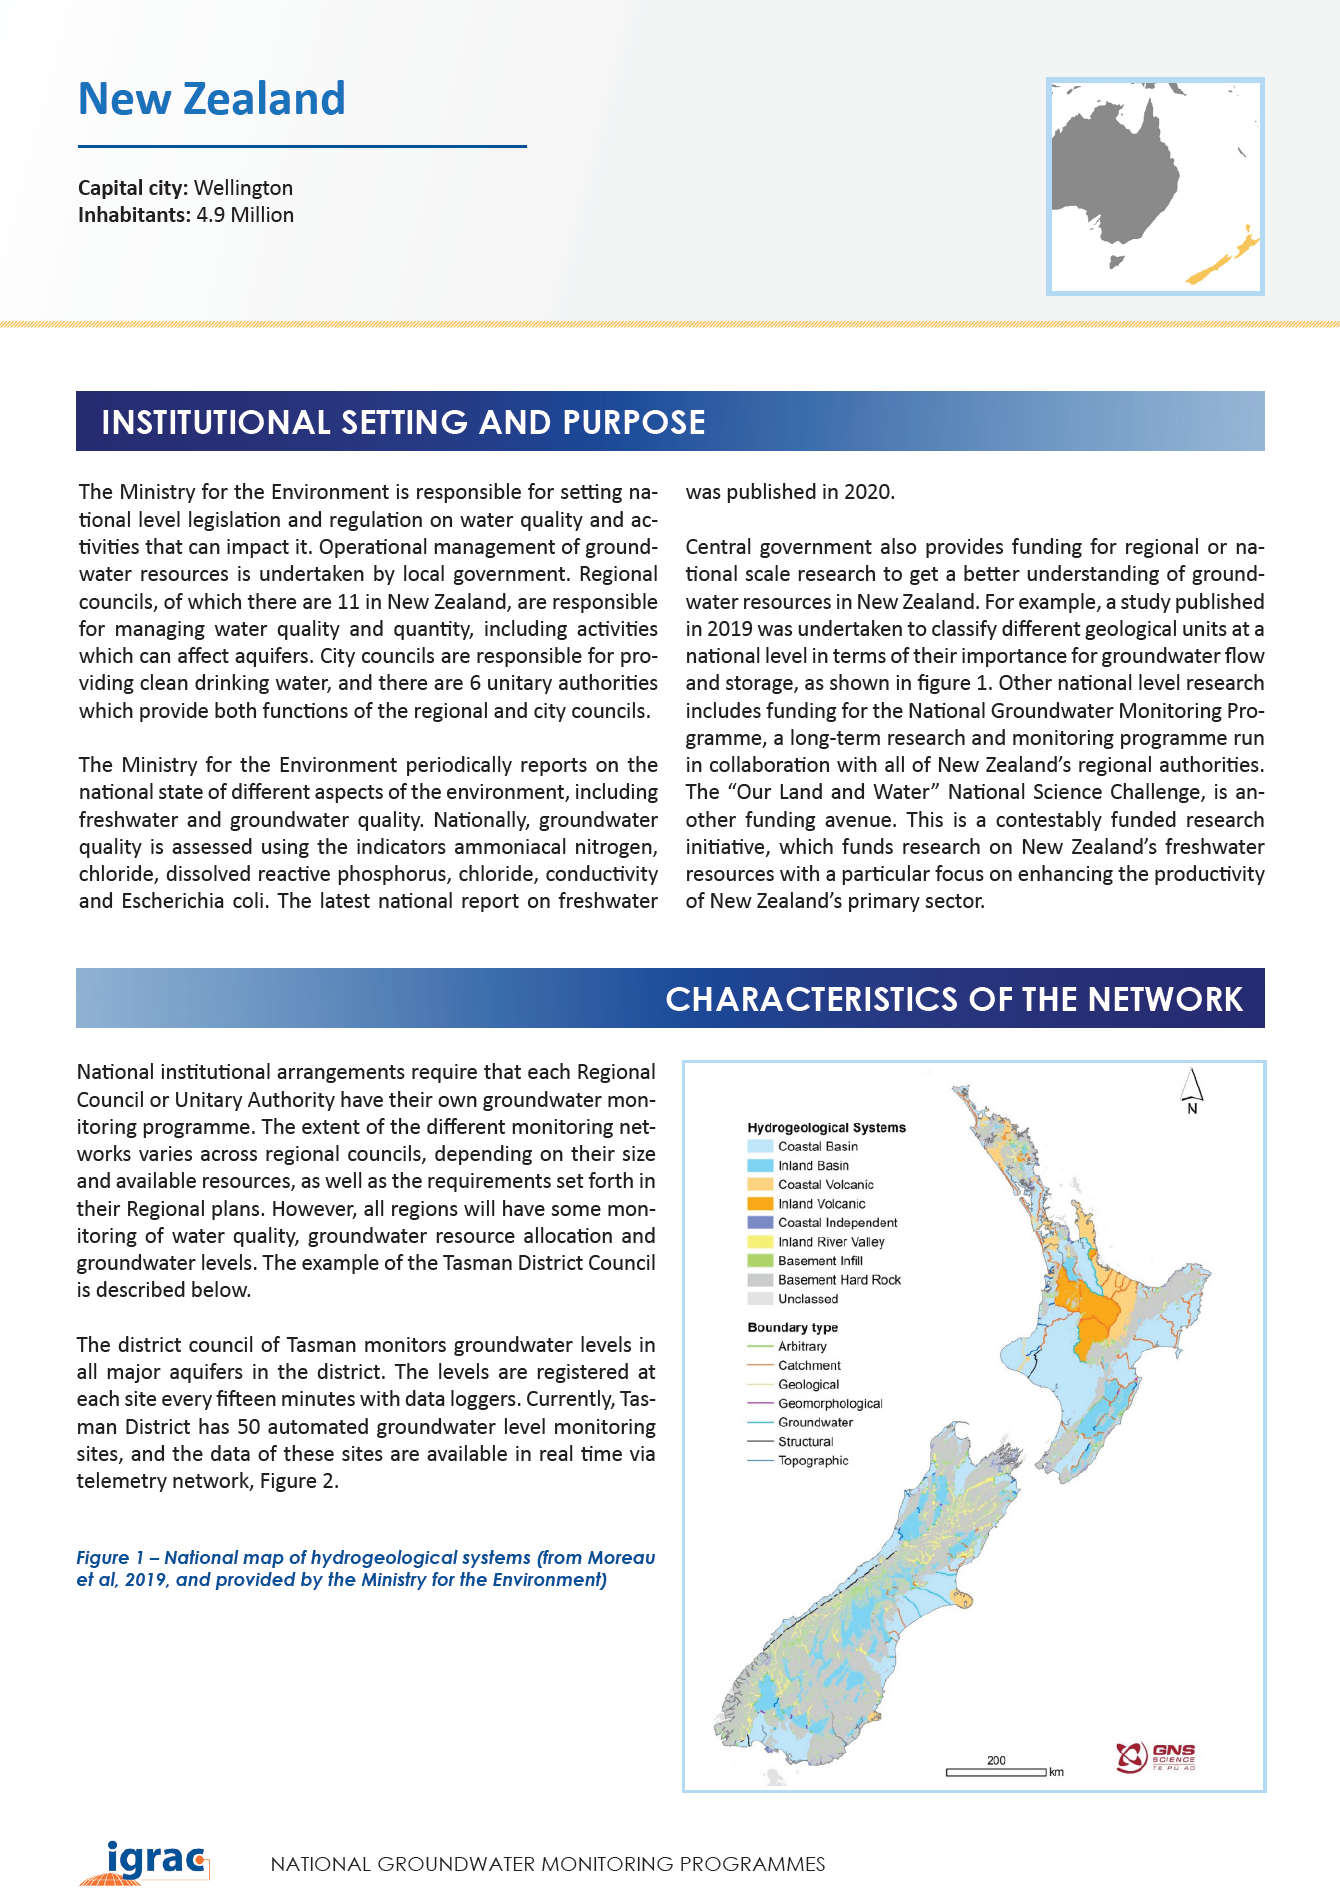 Groundwater monitoring country profile - New Zealand